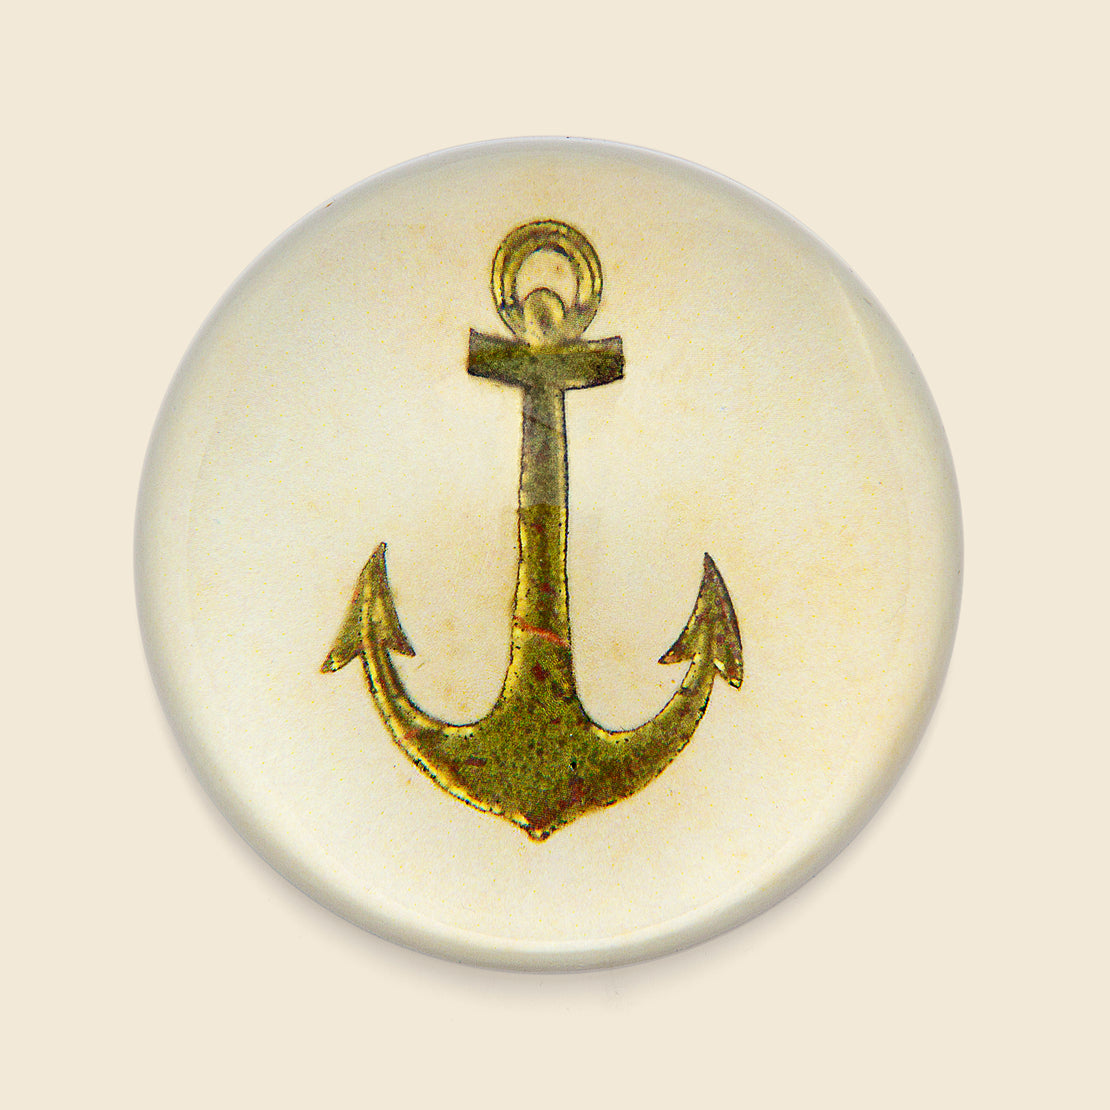 John Derian Dome Paperweight - Anchor